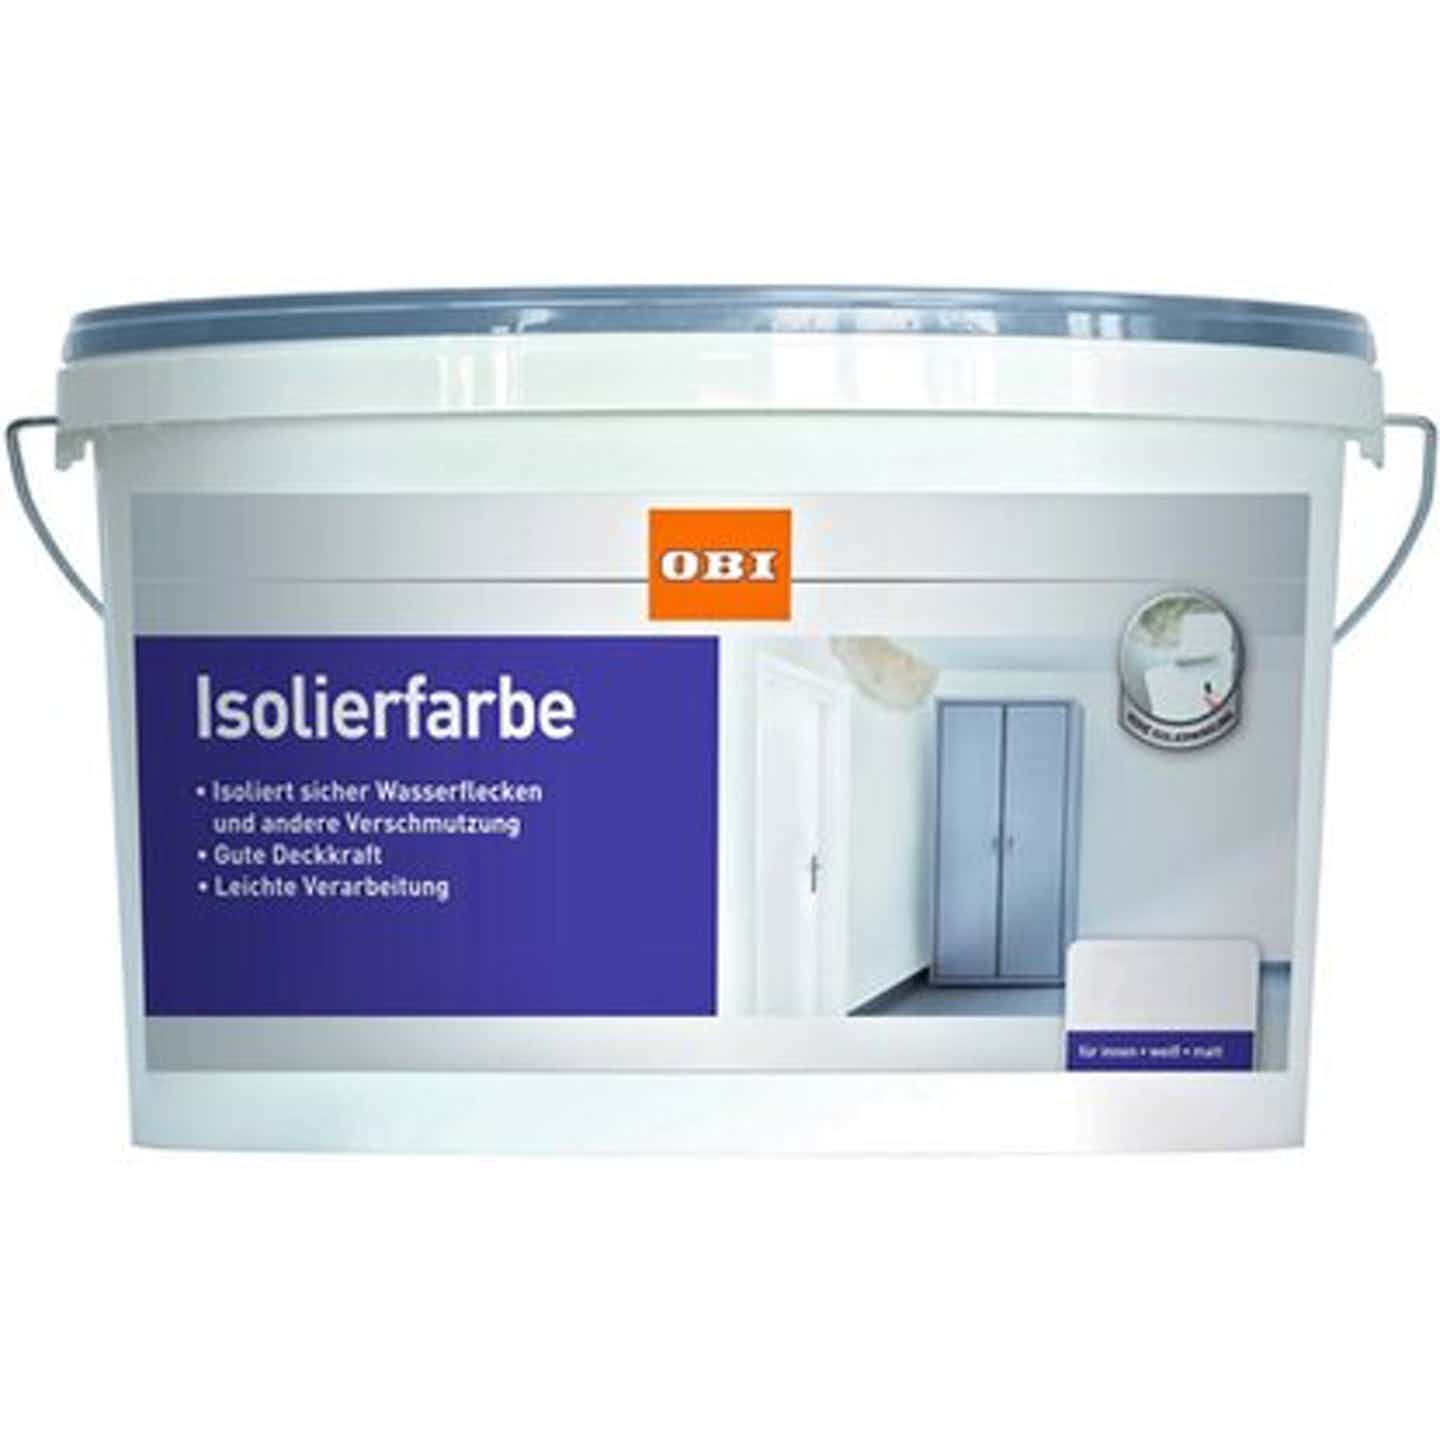 Isolierfarbe